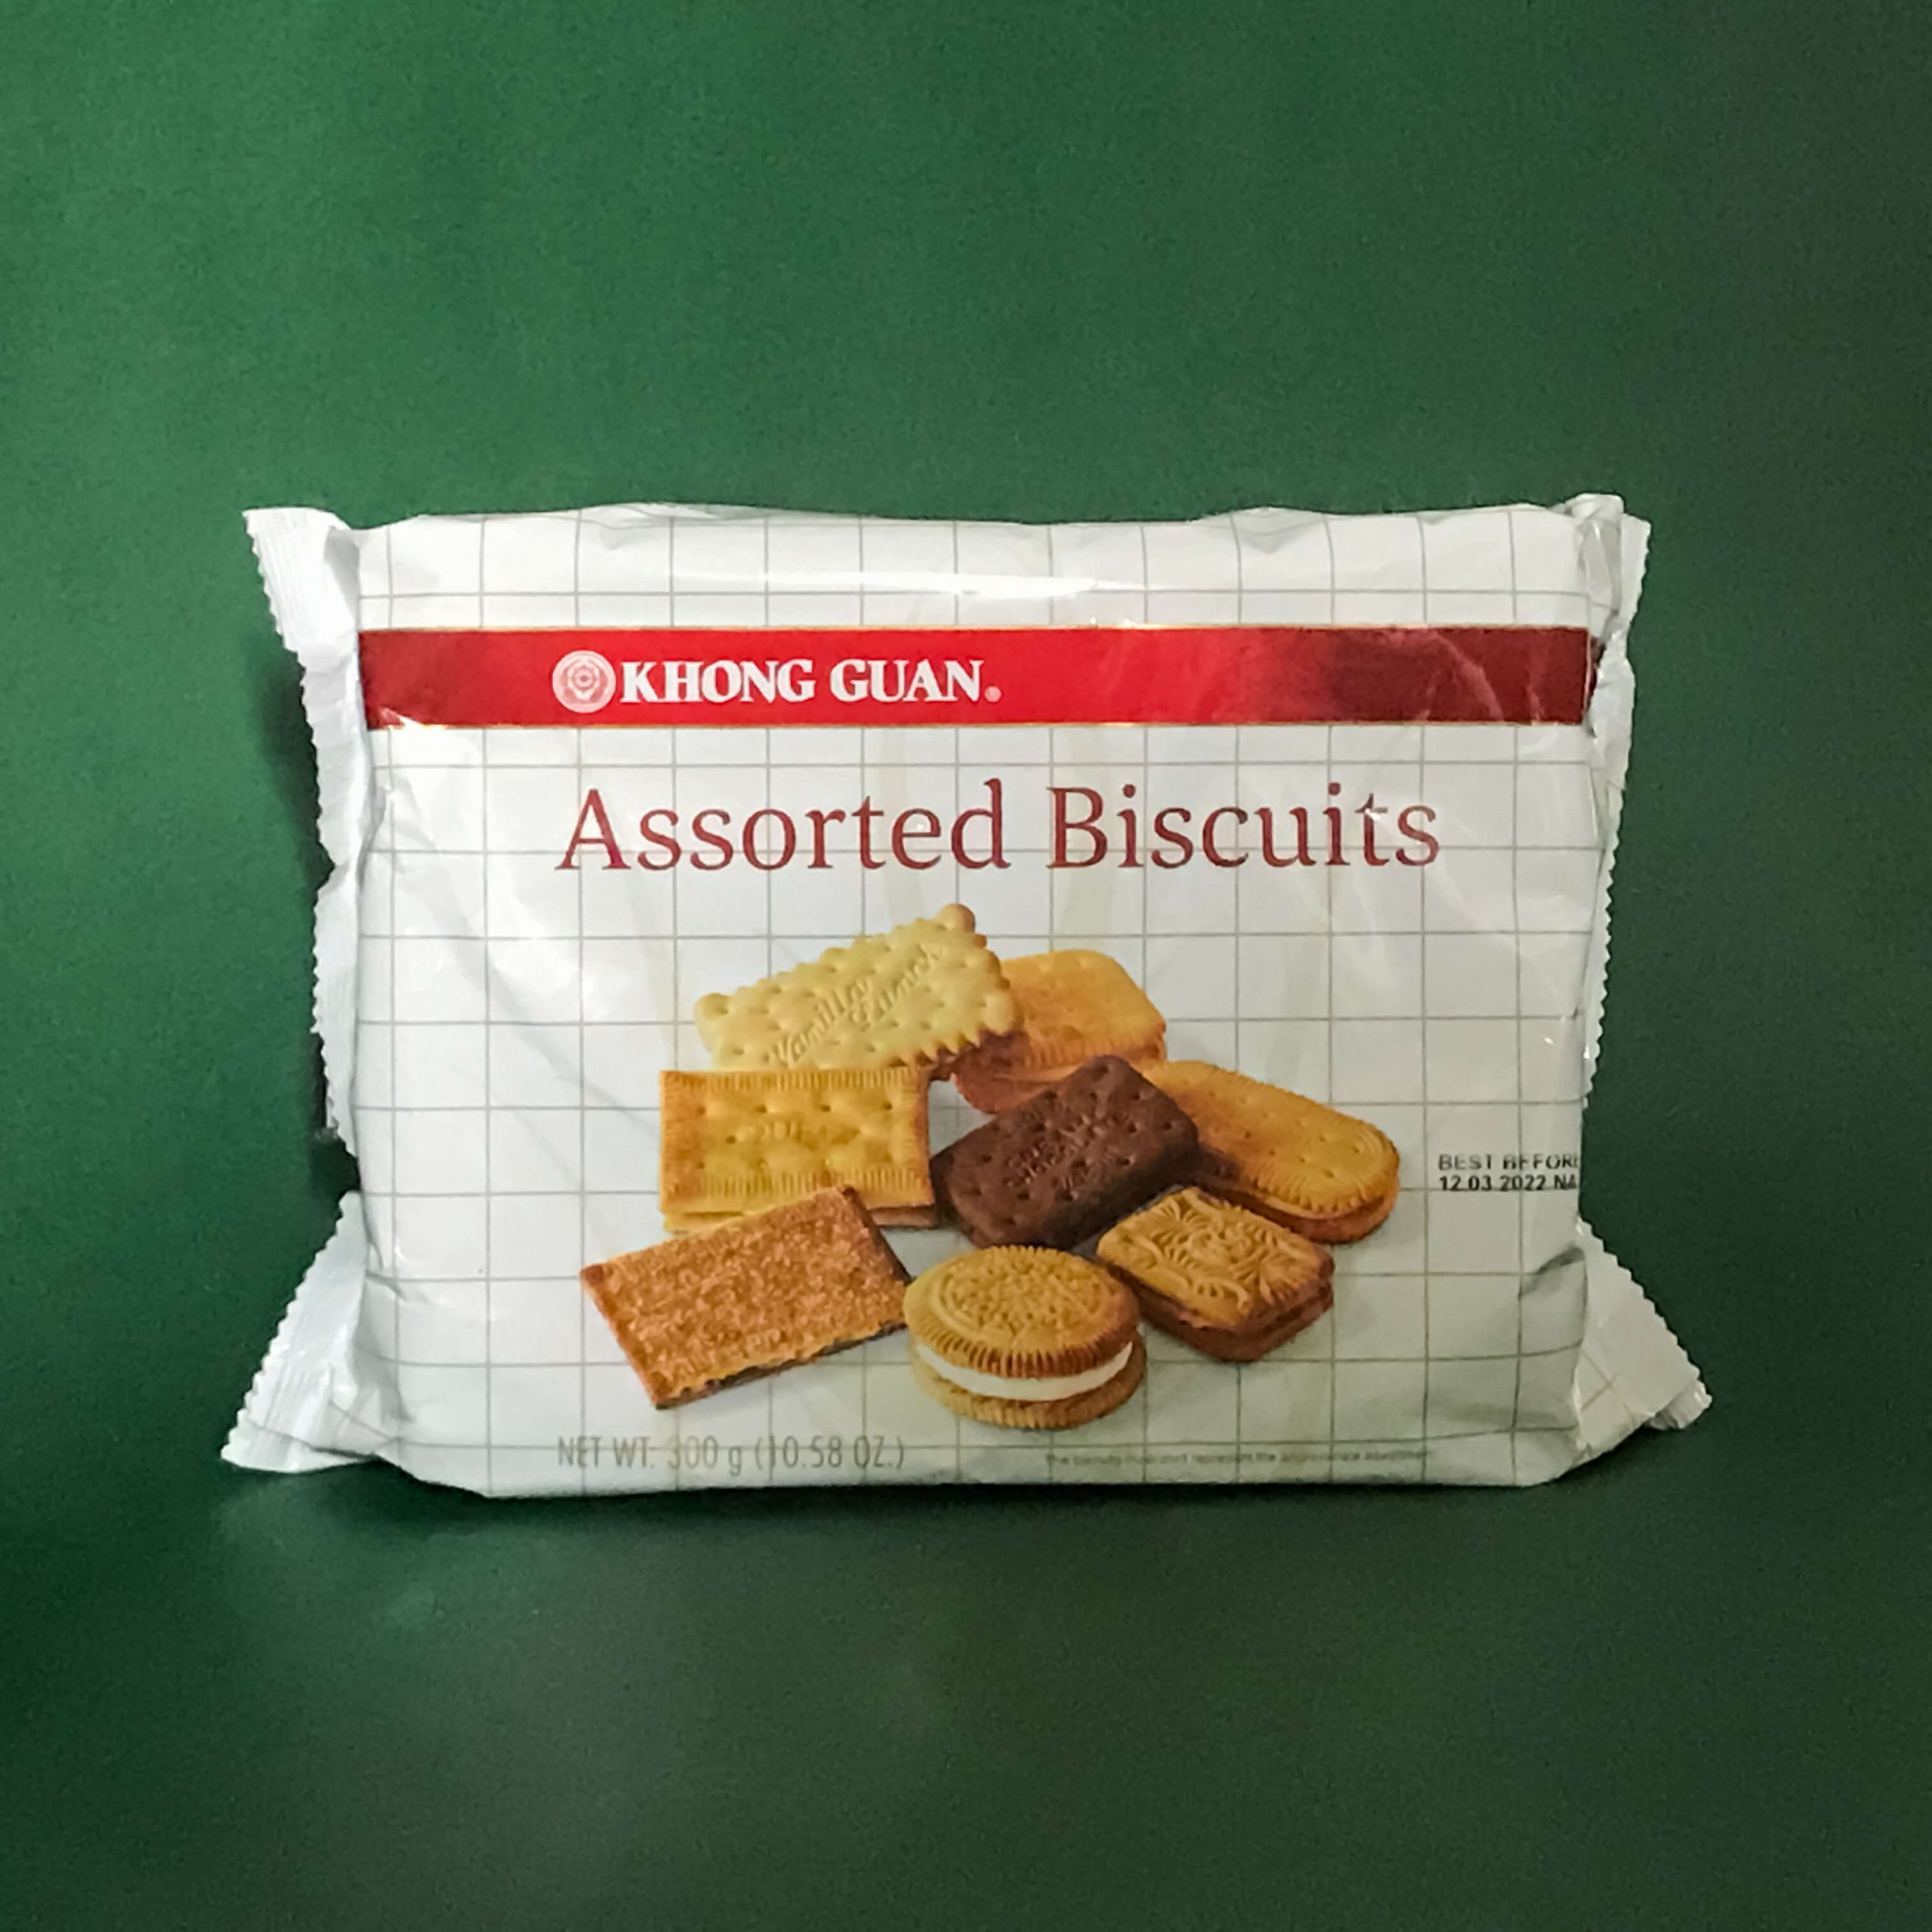 A package of Khong Guan Assorted Biscuits.